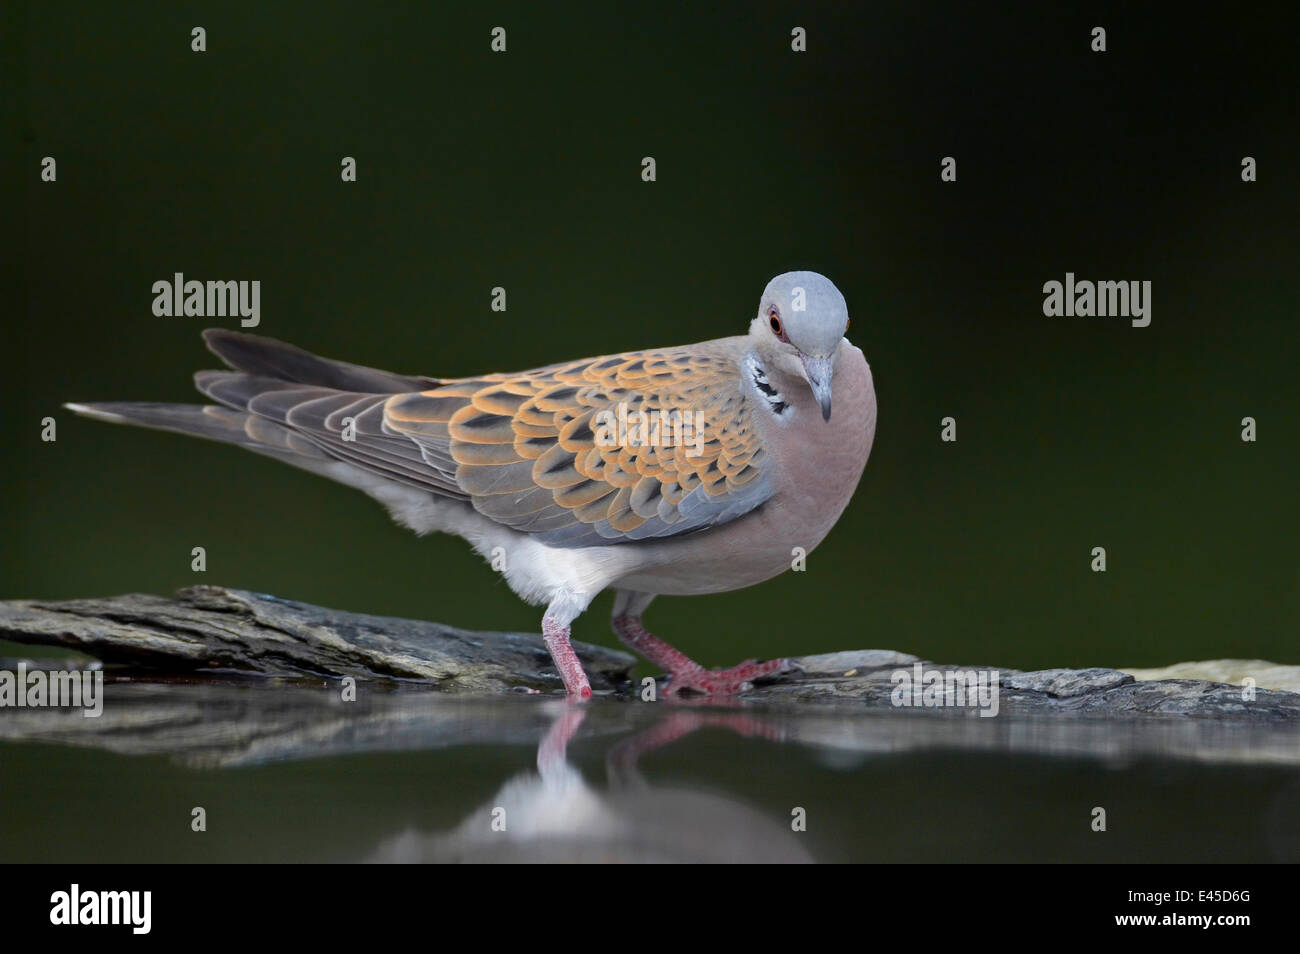 Turtle dove (Streptopelia turtur) at water, Pusztaszer, Hungary, May 2008 - Stock Image